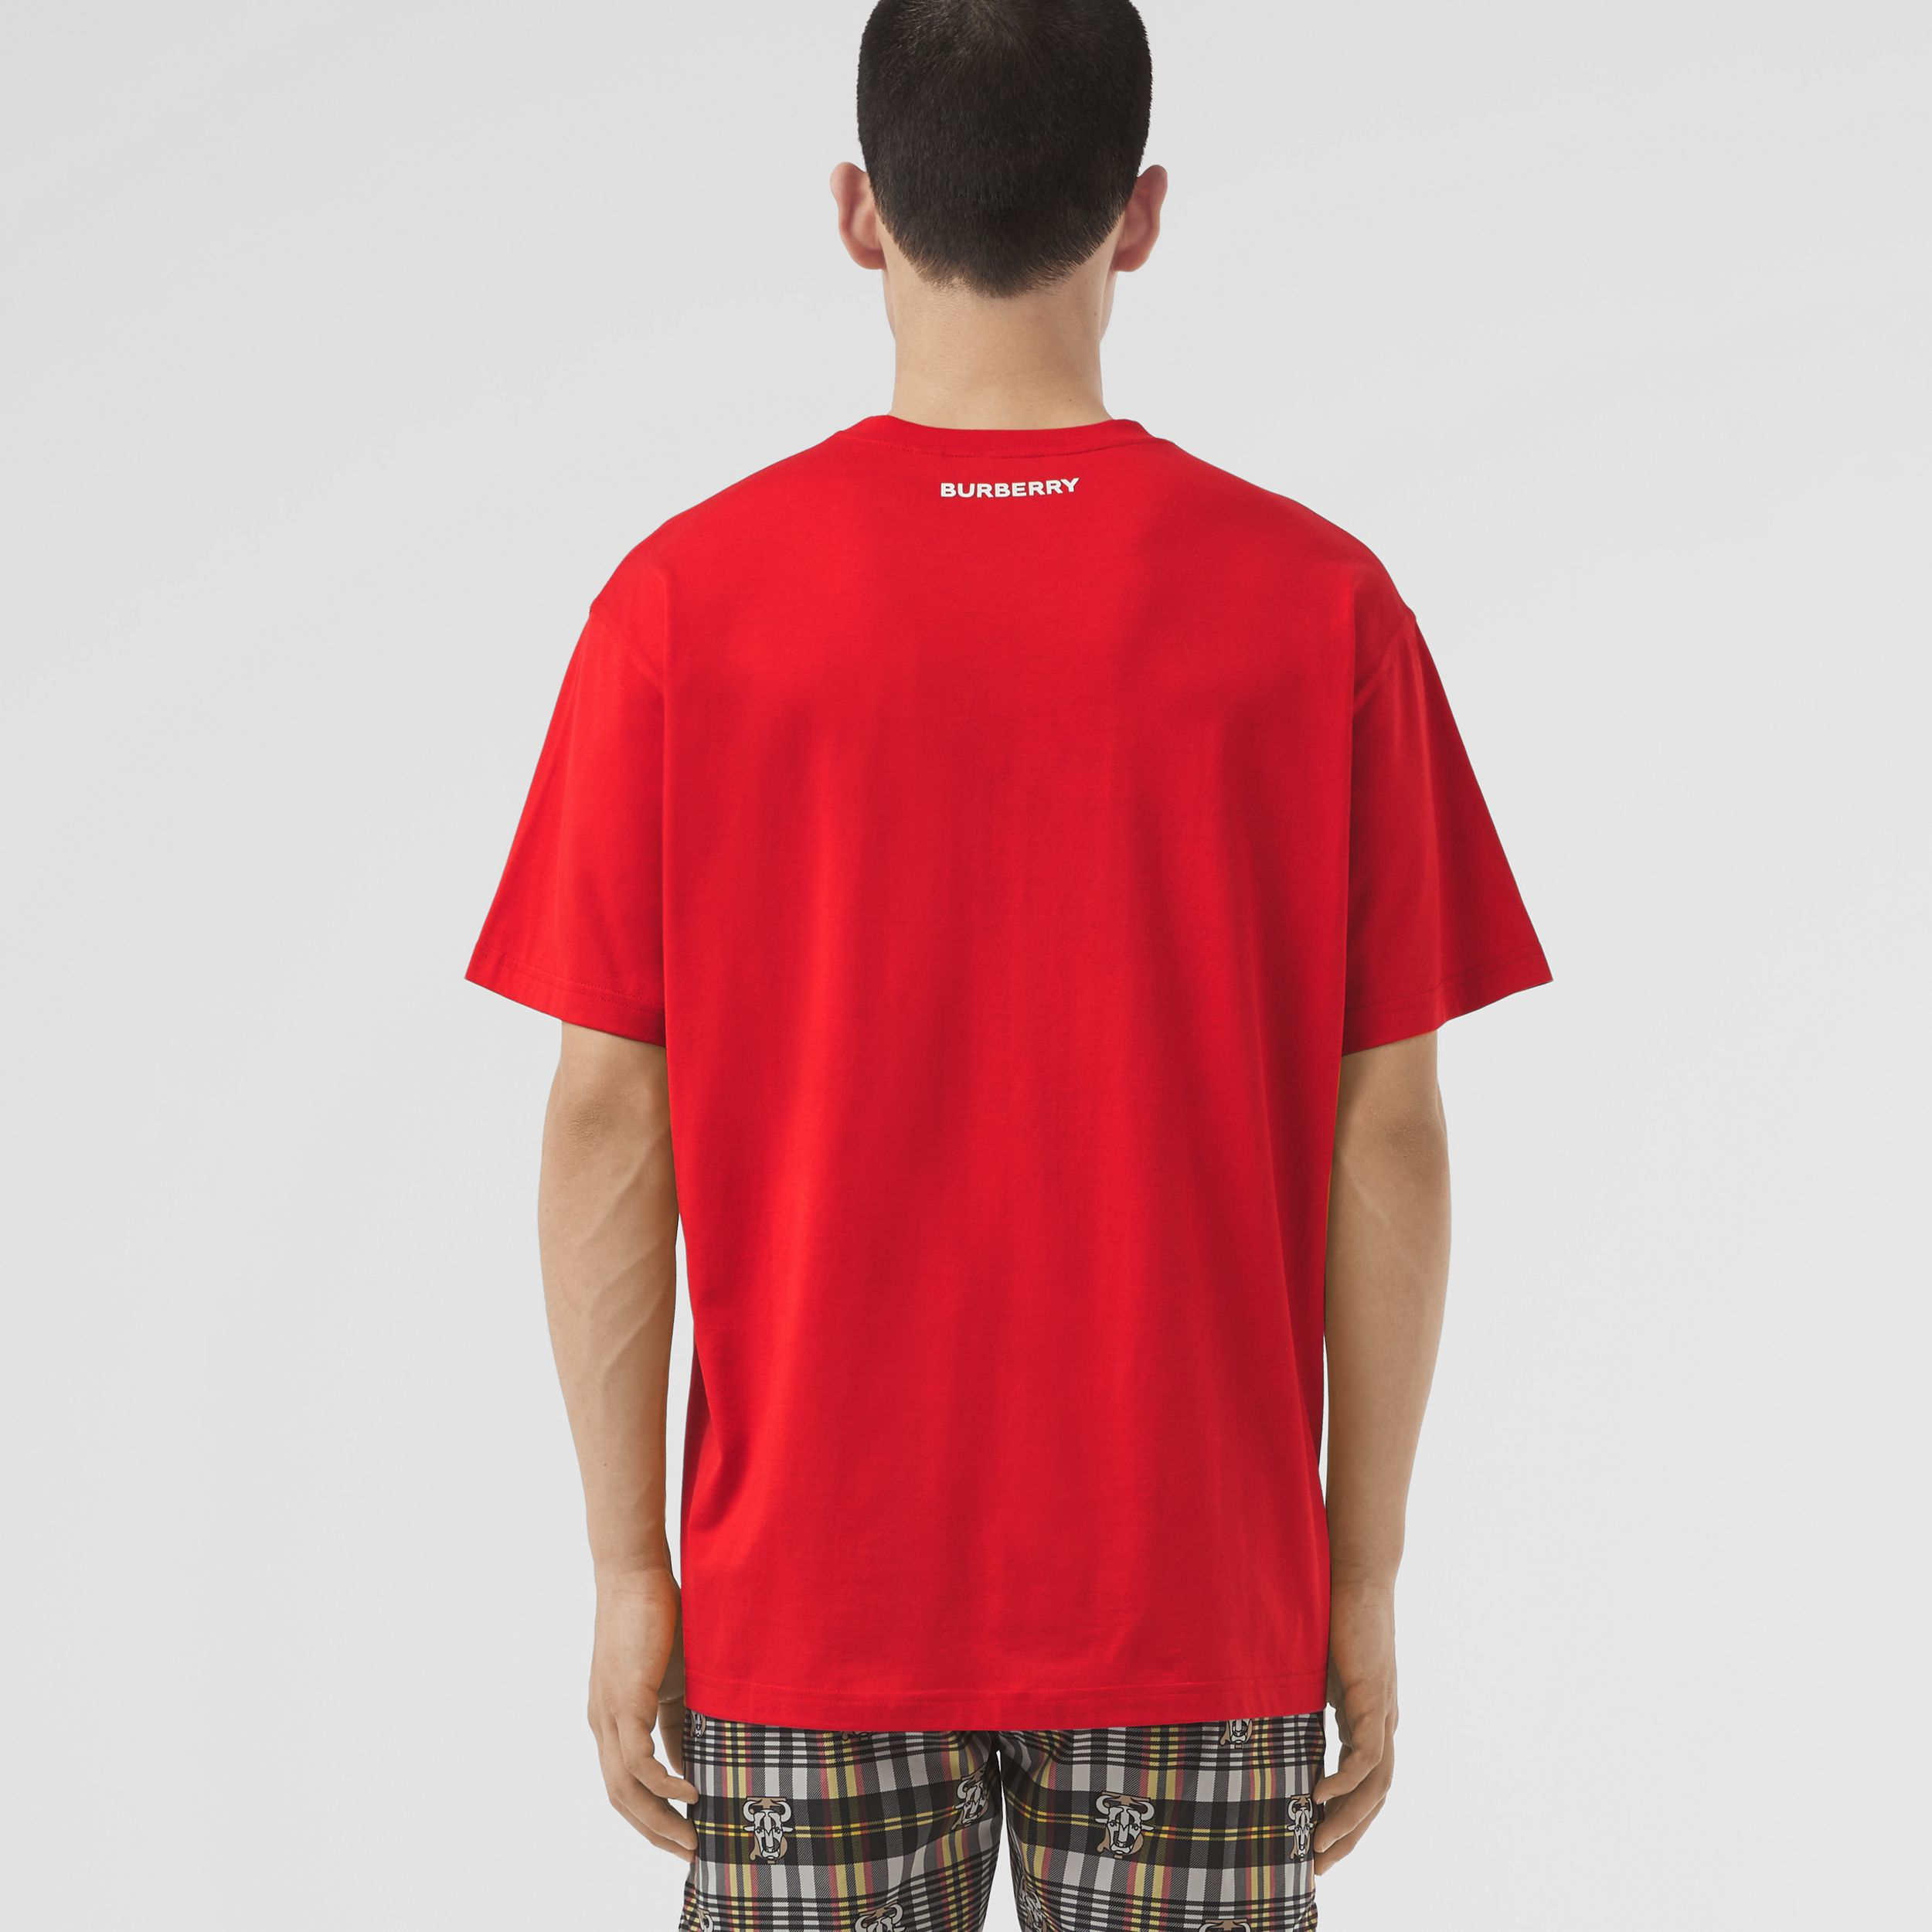 Montage Print Cotton T-shirt – Unisex in Bright Red | Burberry Australia - 3